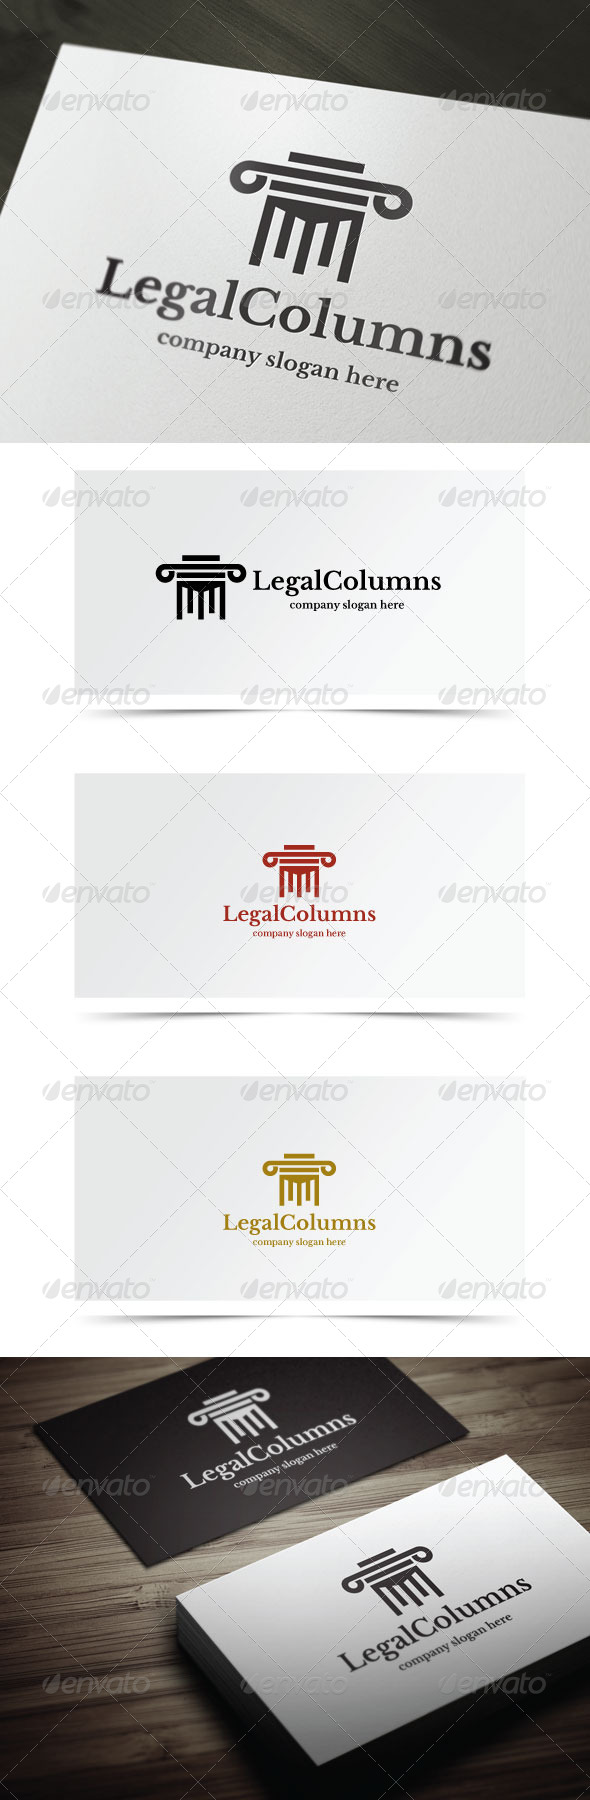 Legal Columns - Objects Logo Templates